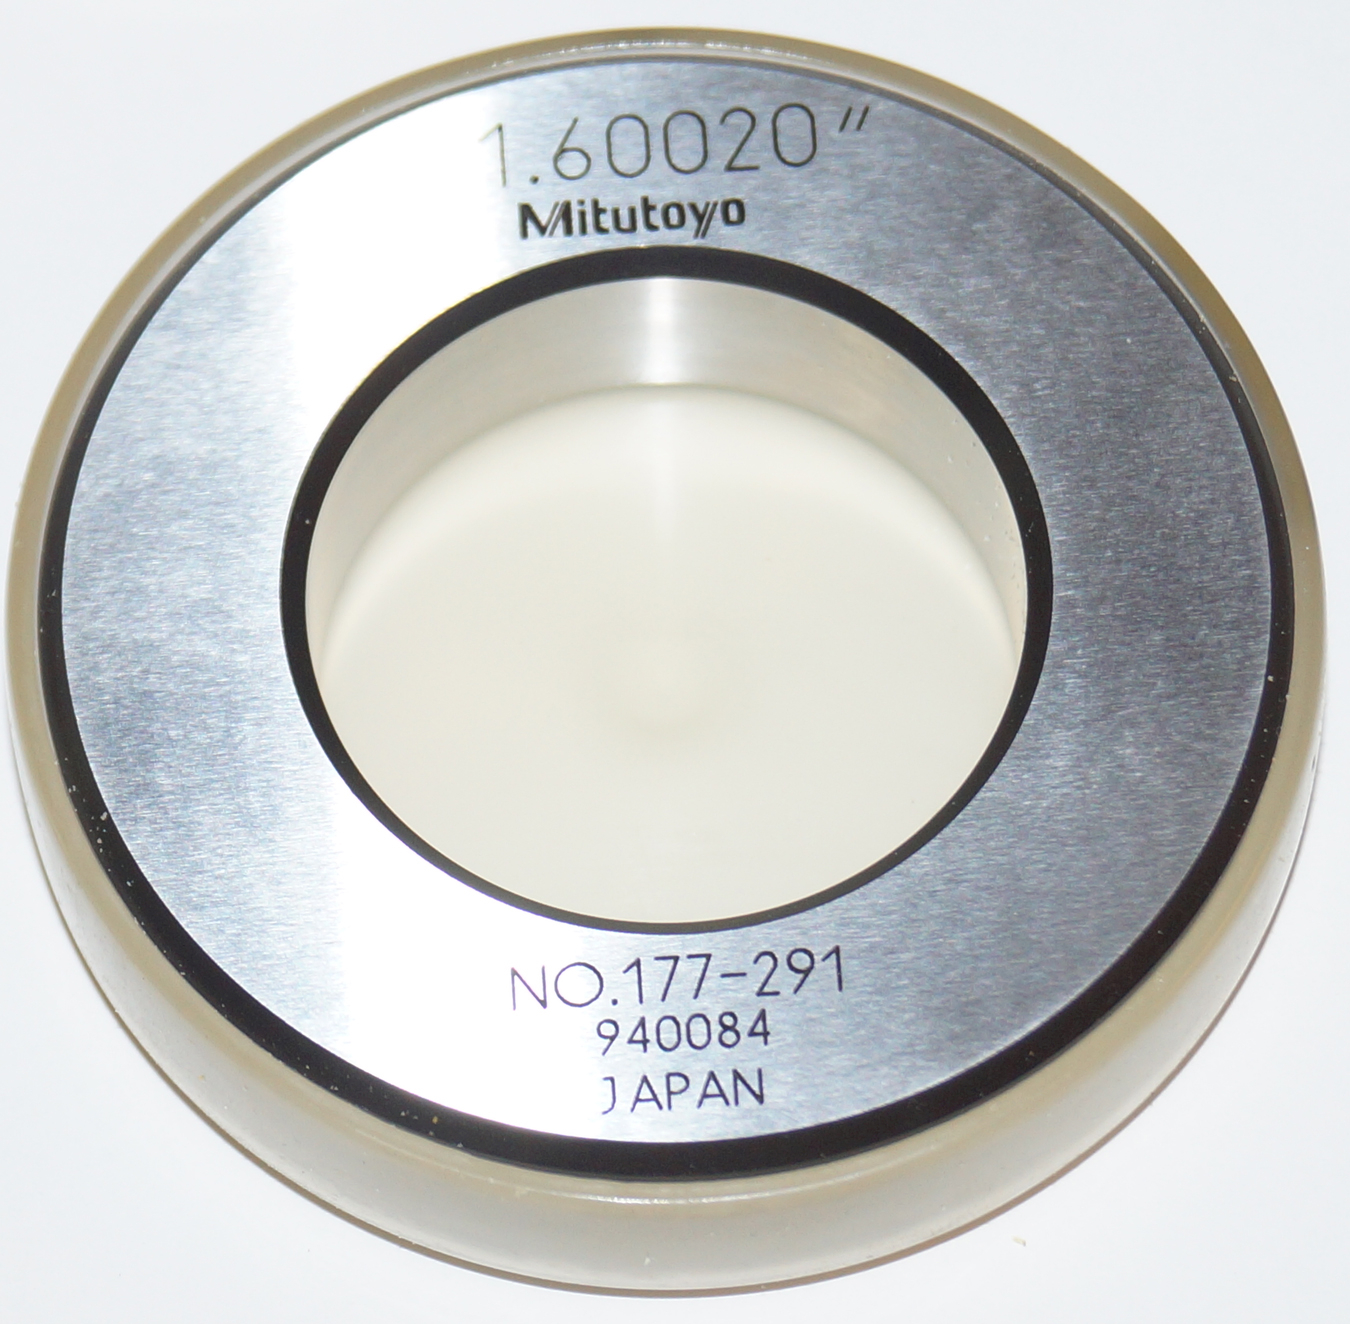 "Mitutoyo 1.6"" Setting Ring Master 177-291"